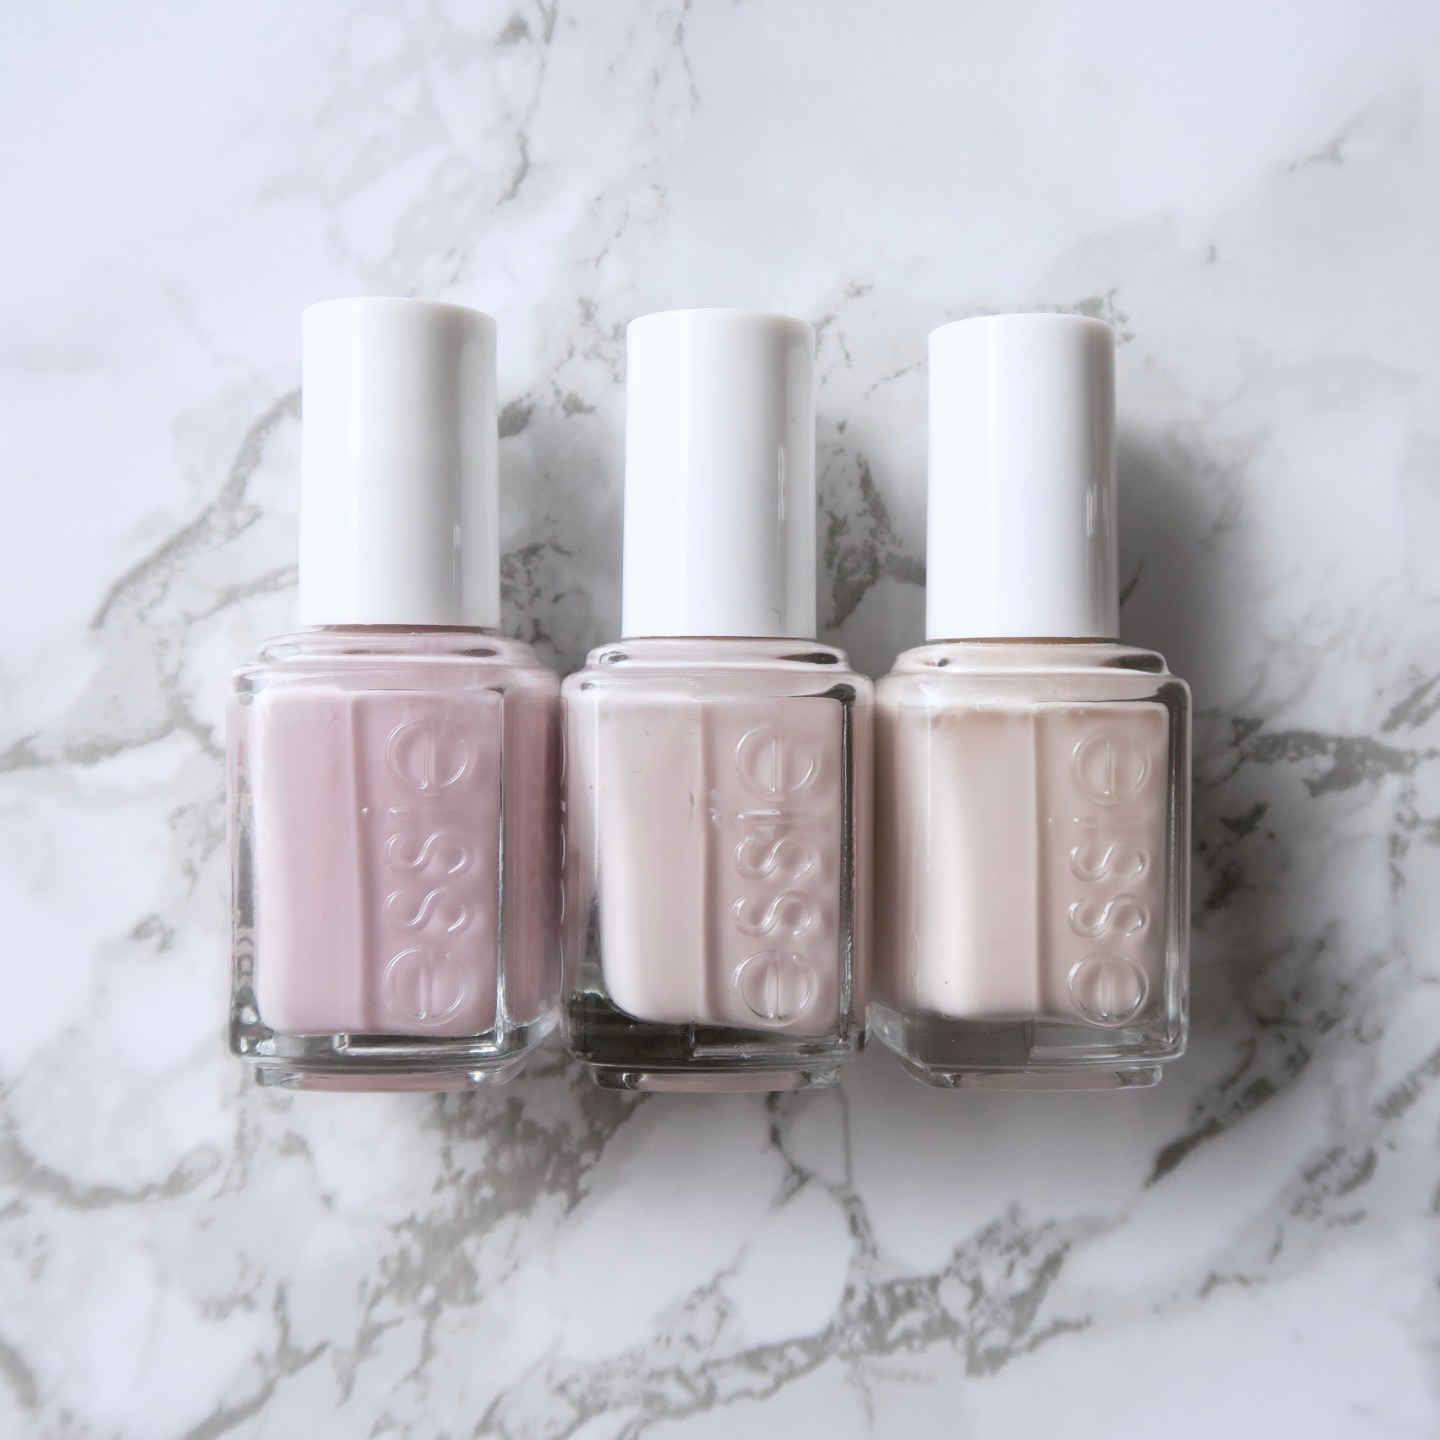 Essie Fall 2017 collection - Mixtaupe, comparison to similar essie polishes